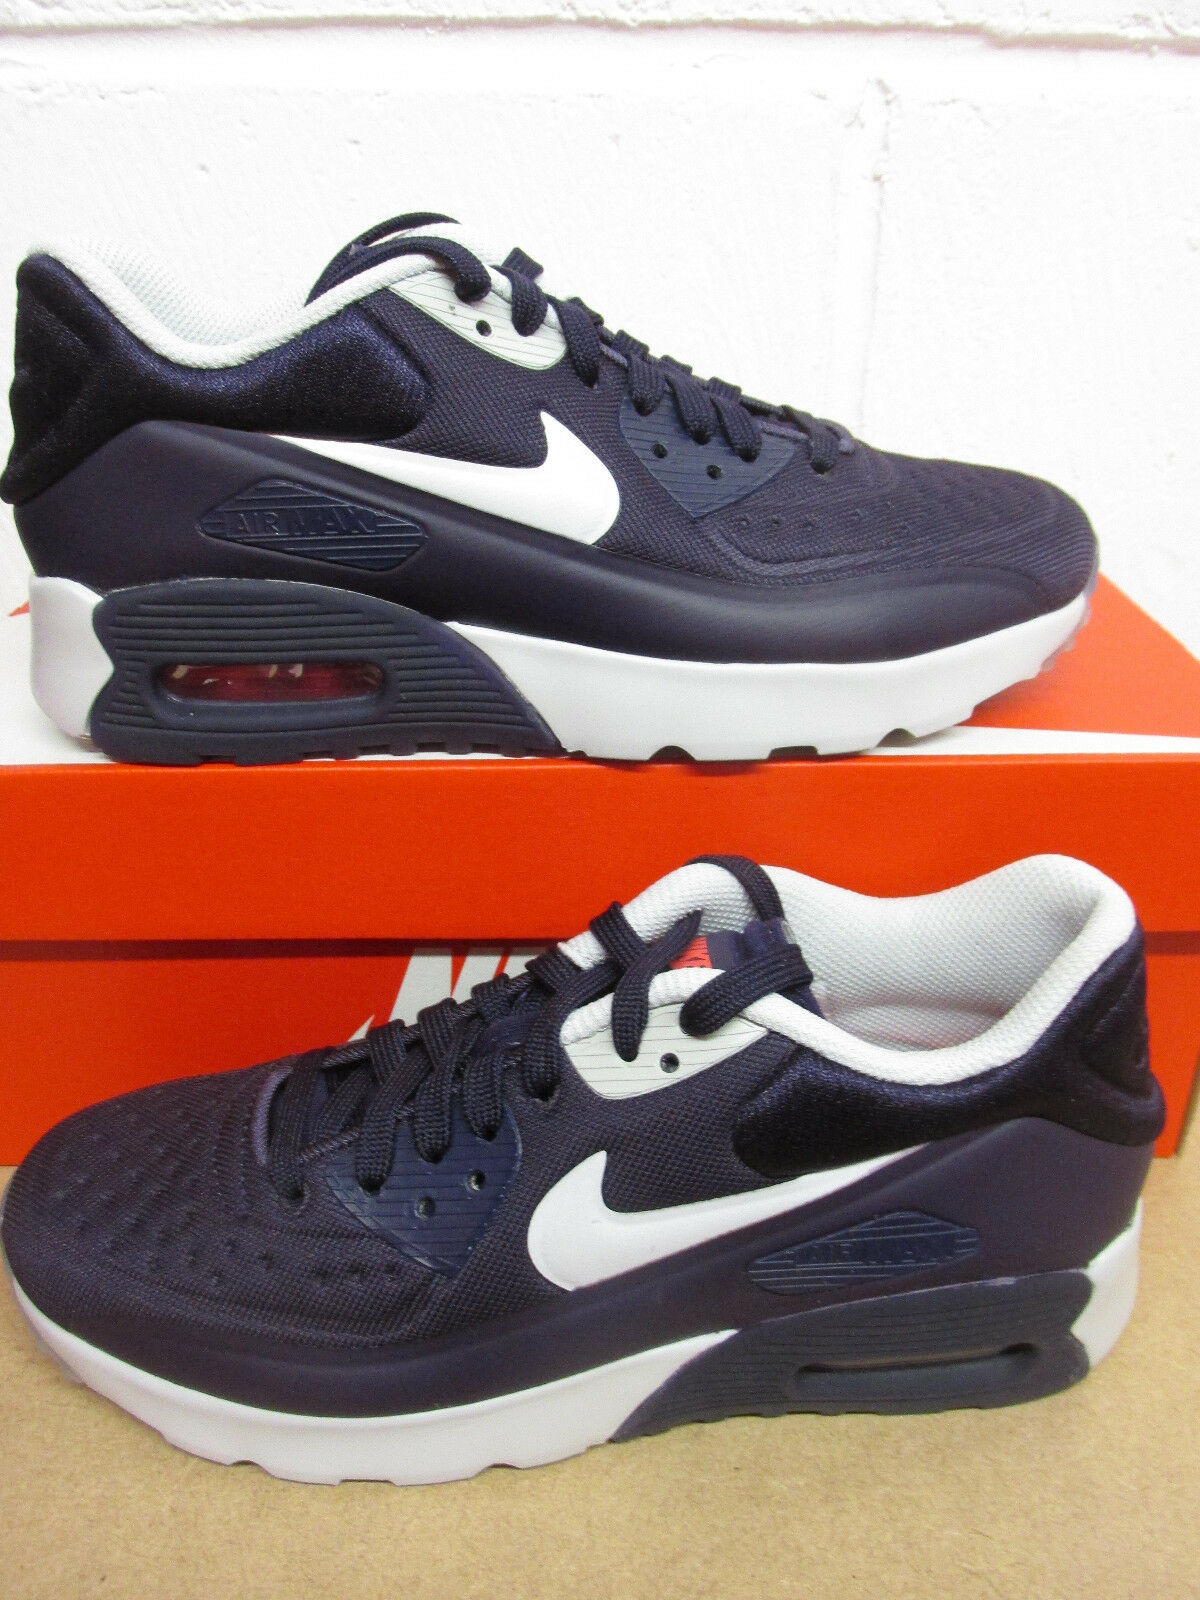 Nike Air Max 90 Ultra SE (GS) Running Baskets 844600 500 Baskets Chaussures